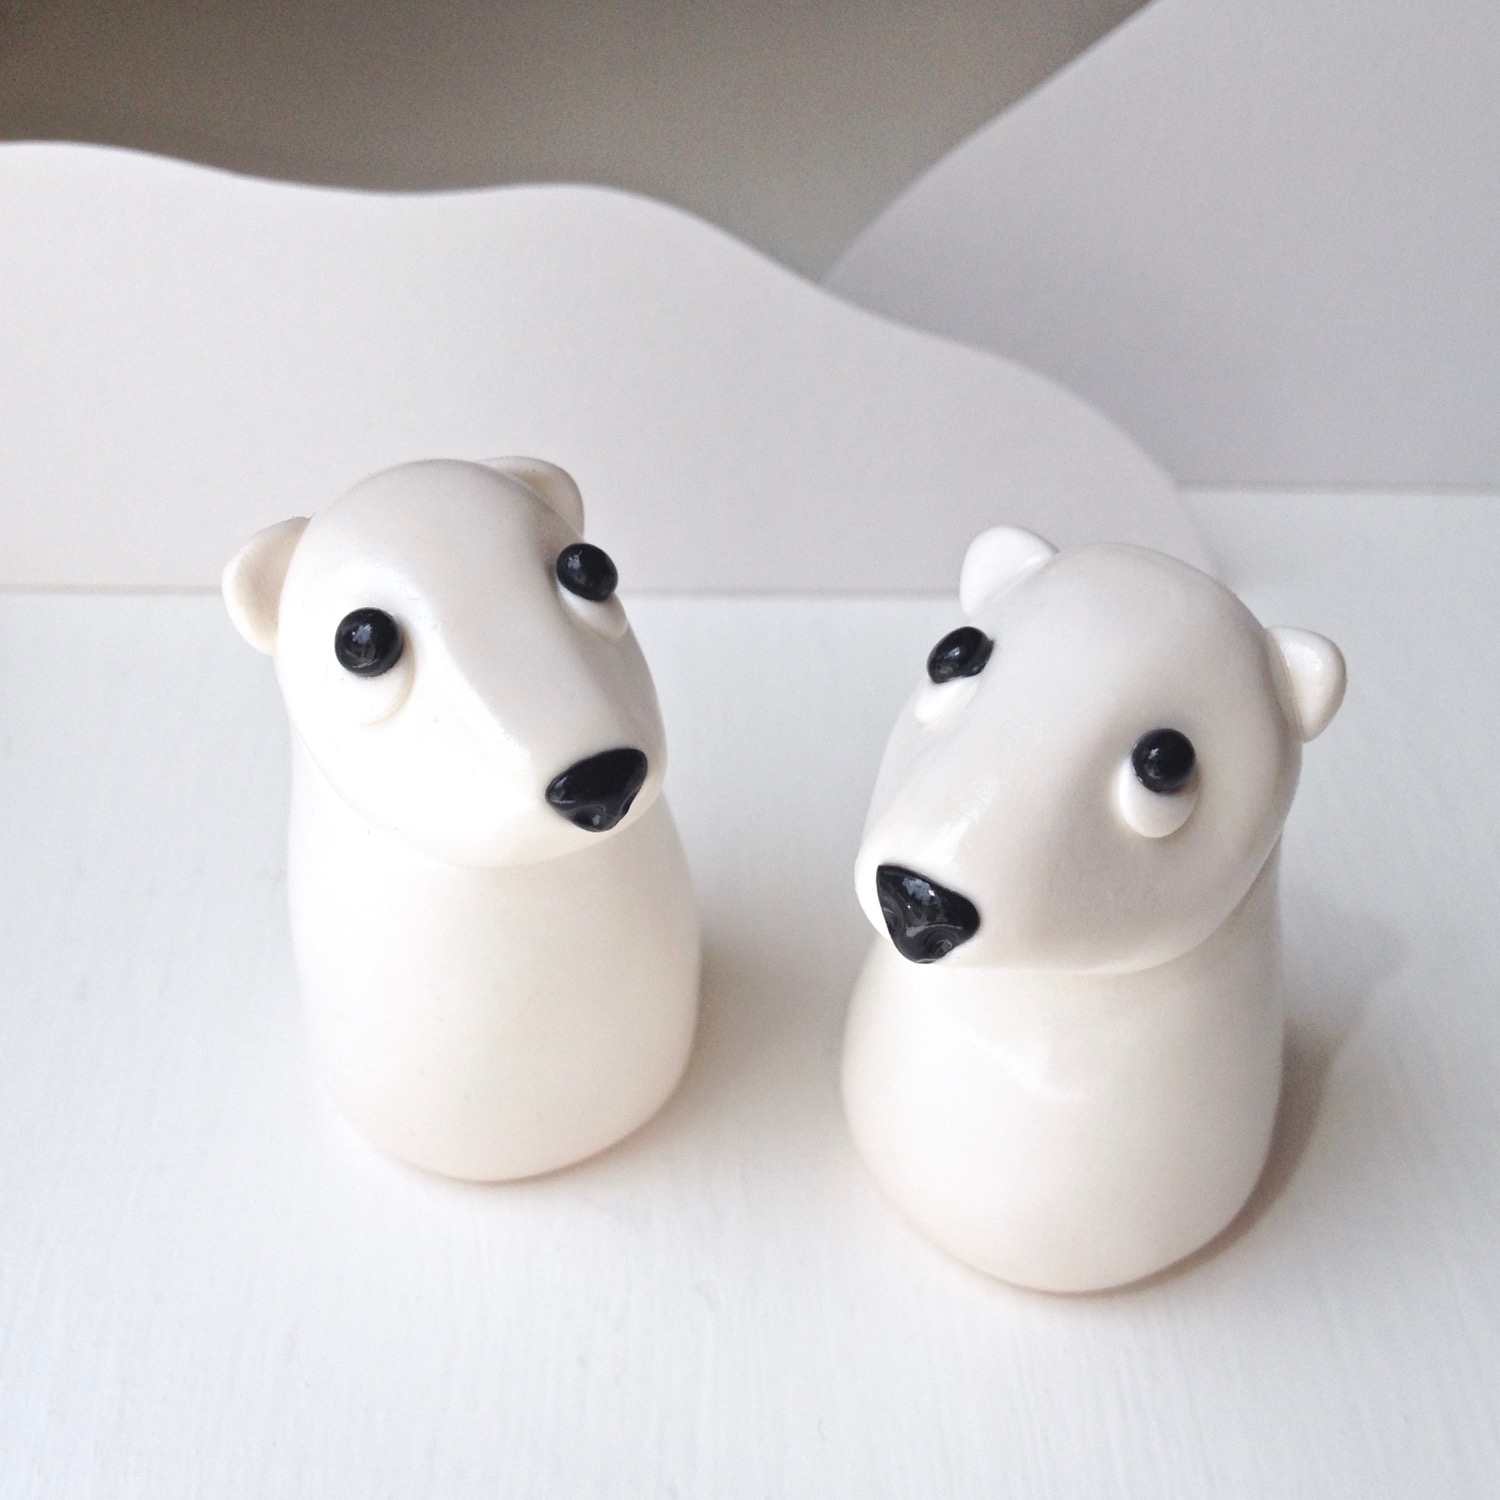 Handmade Fimo polymer clay polar bear figurines by Laura Mirjami